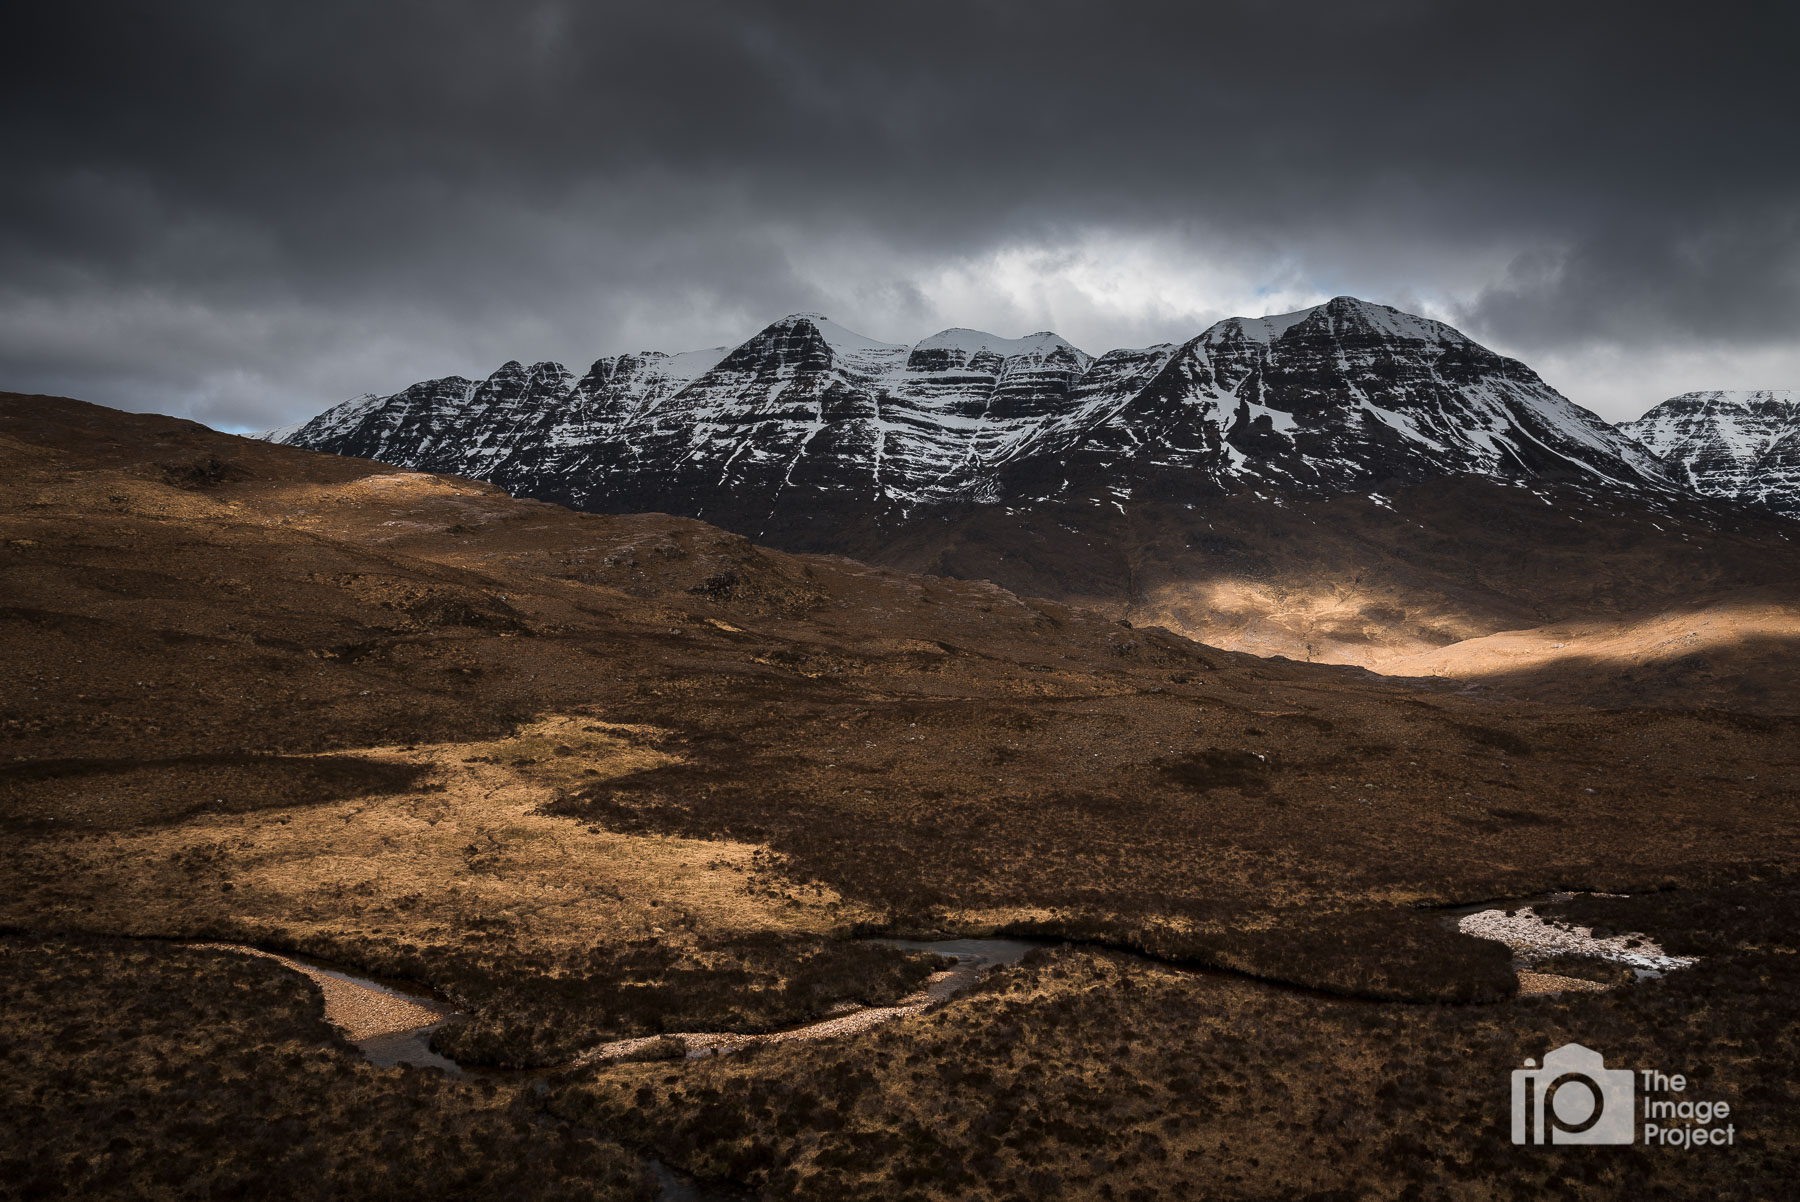 Brief cloud cover and light breaks gave rise to this scene in the Torridon valley, Feb 2018